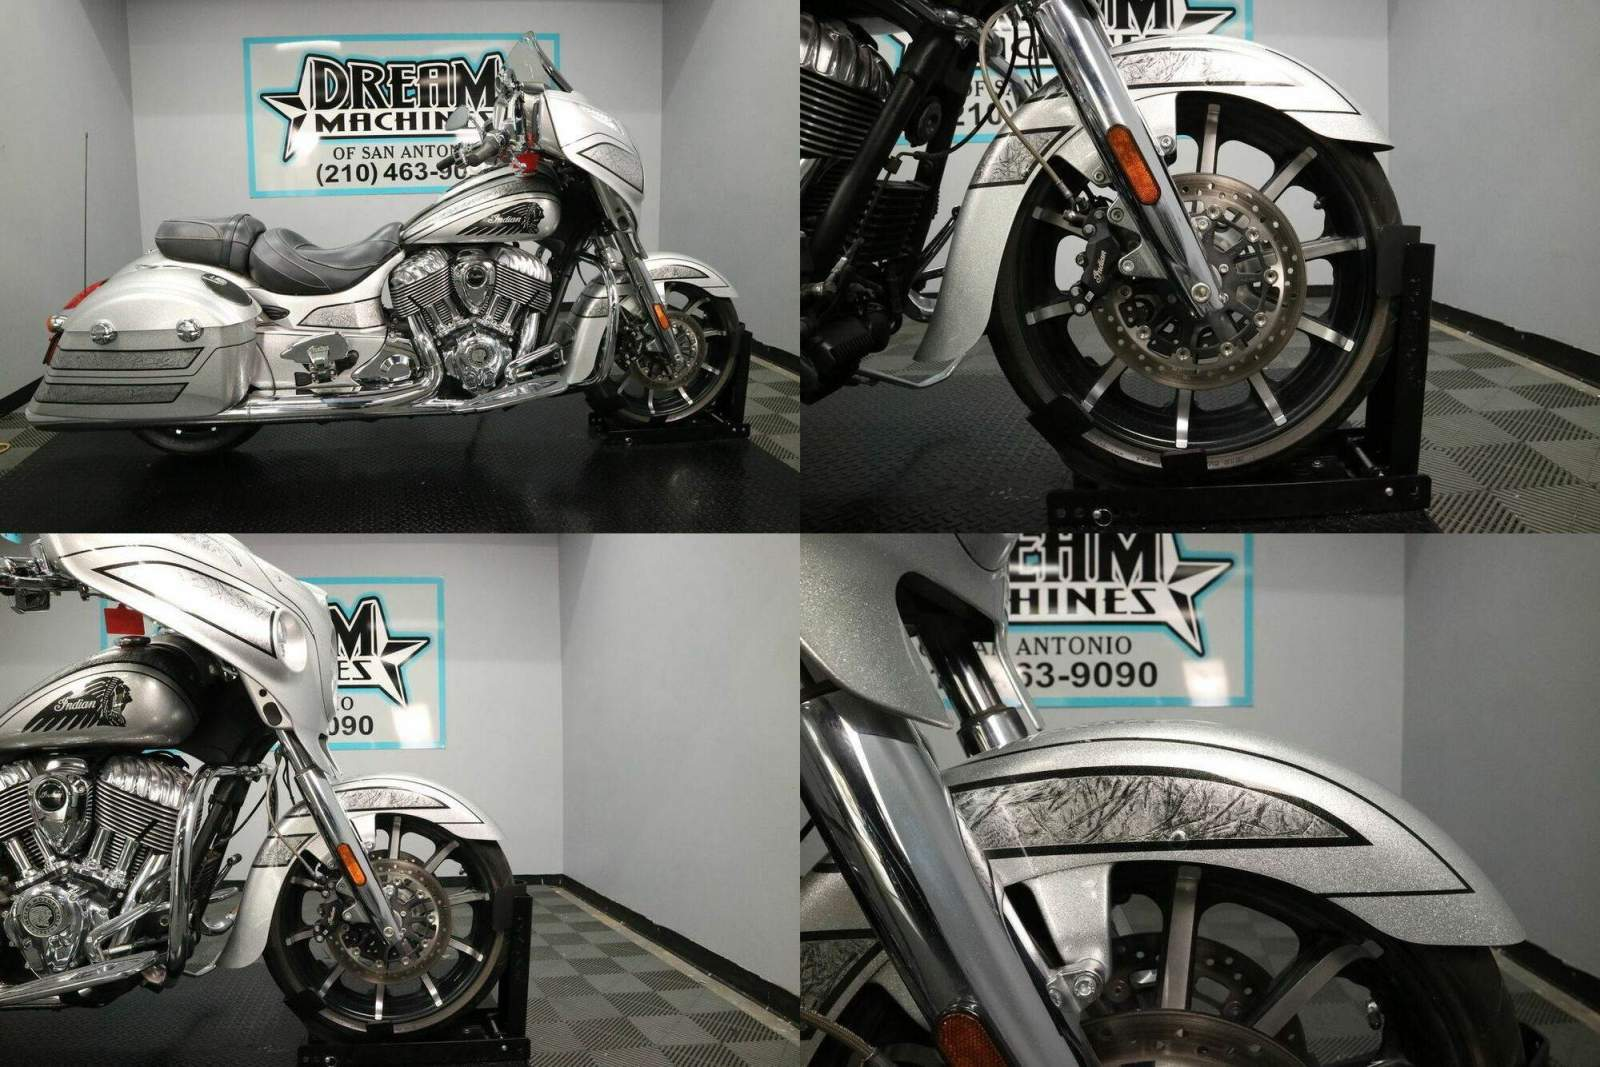 2018 Indian Chieftain Elite Black Hills Silver w Marble Accent Black used for sale craigslist